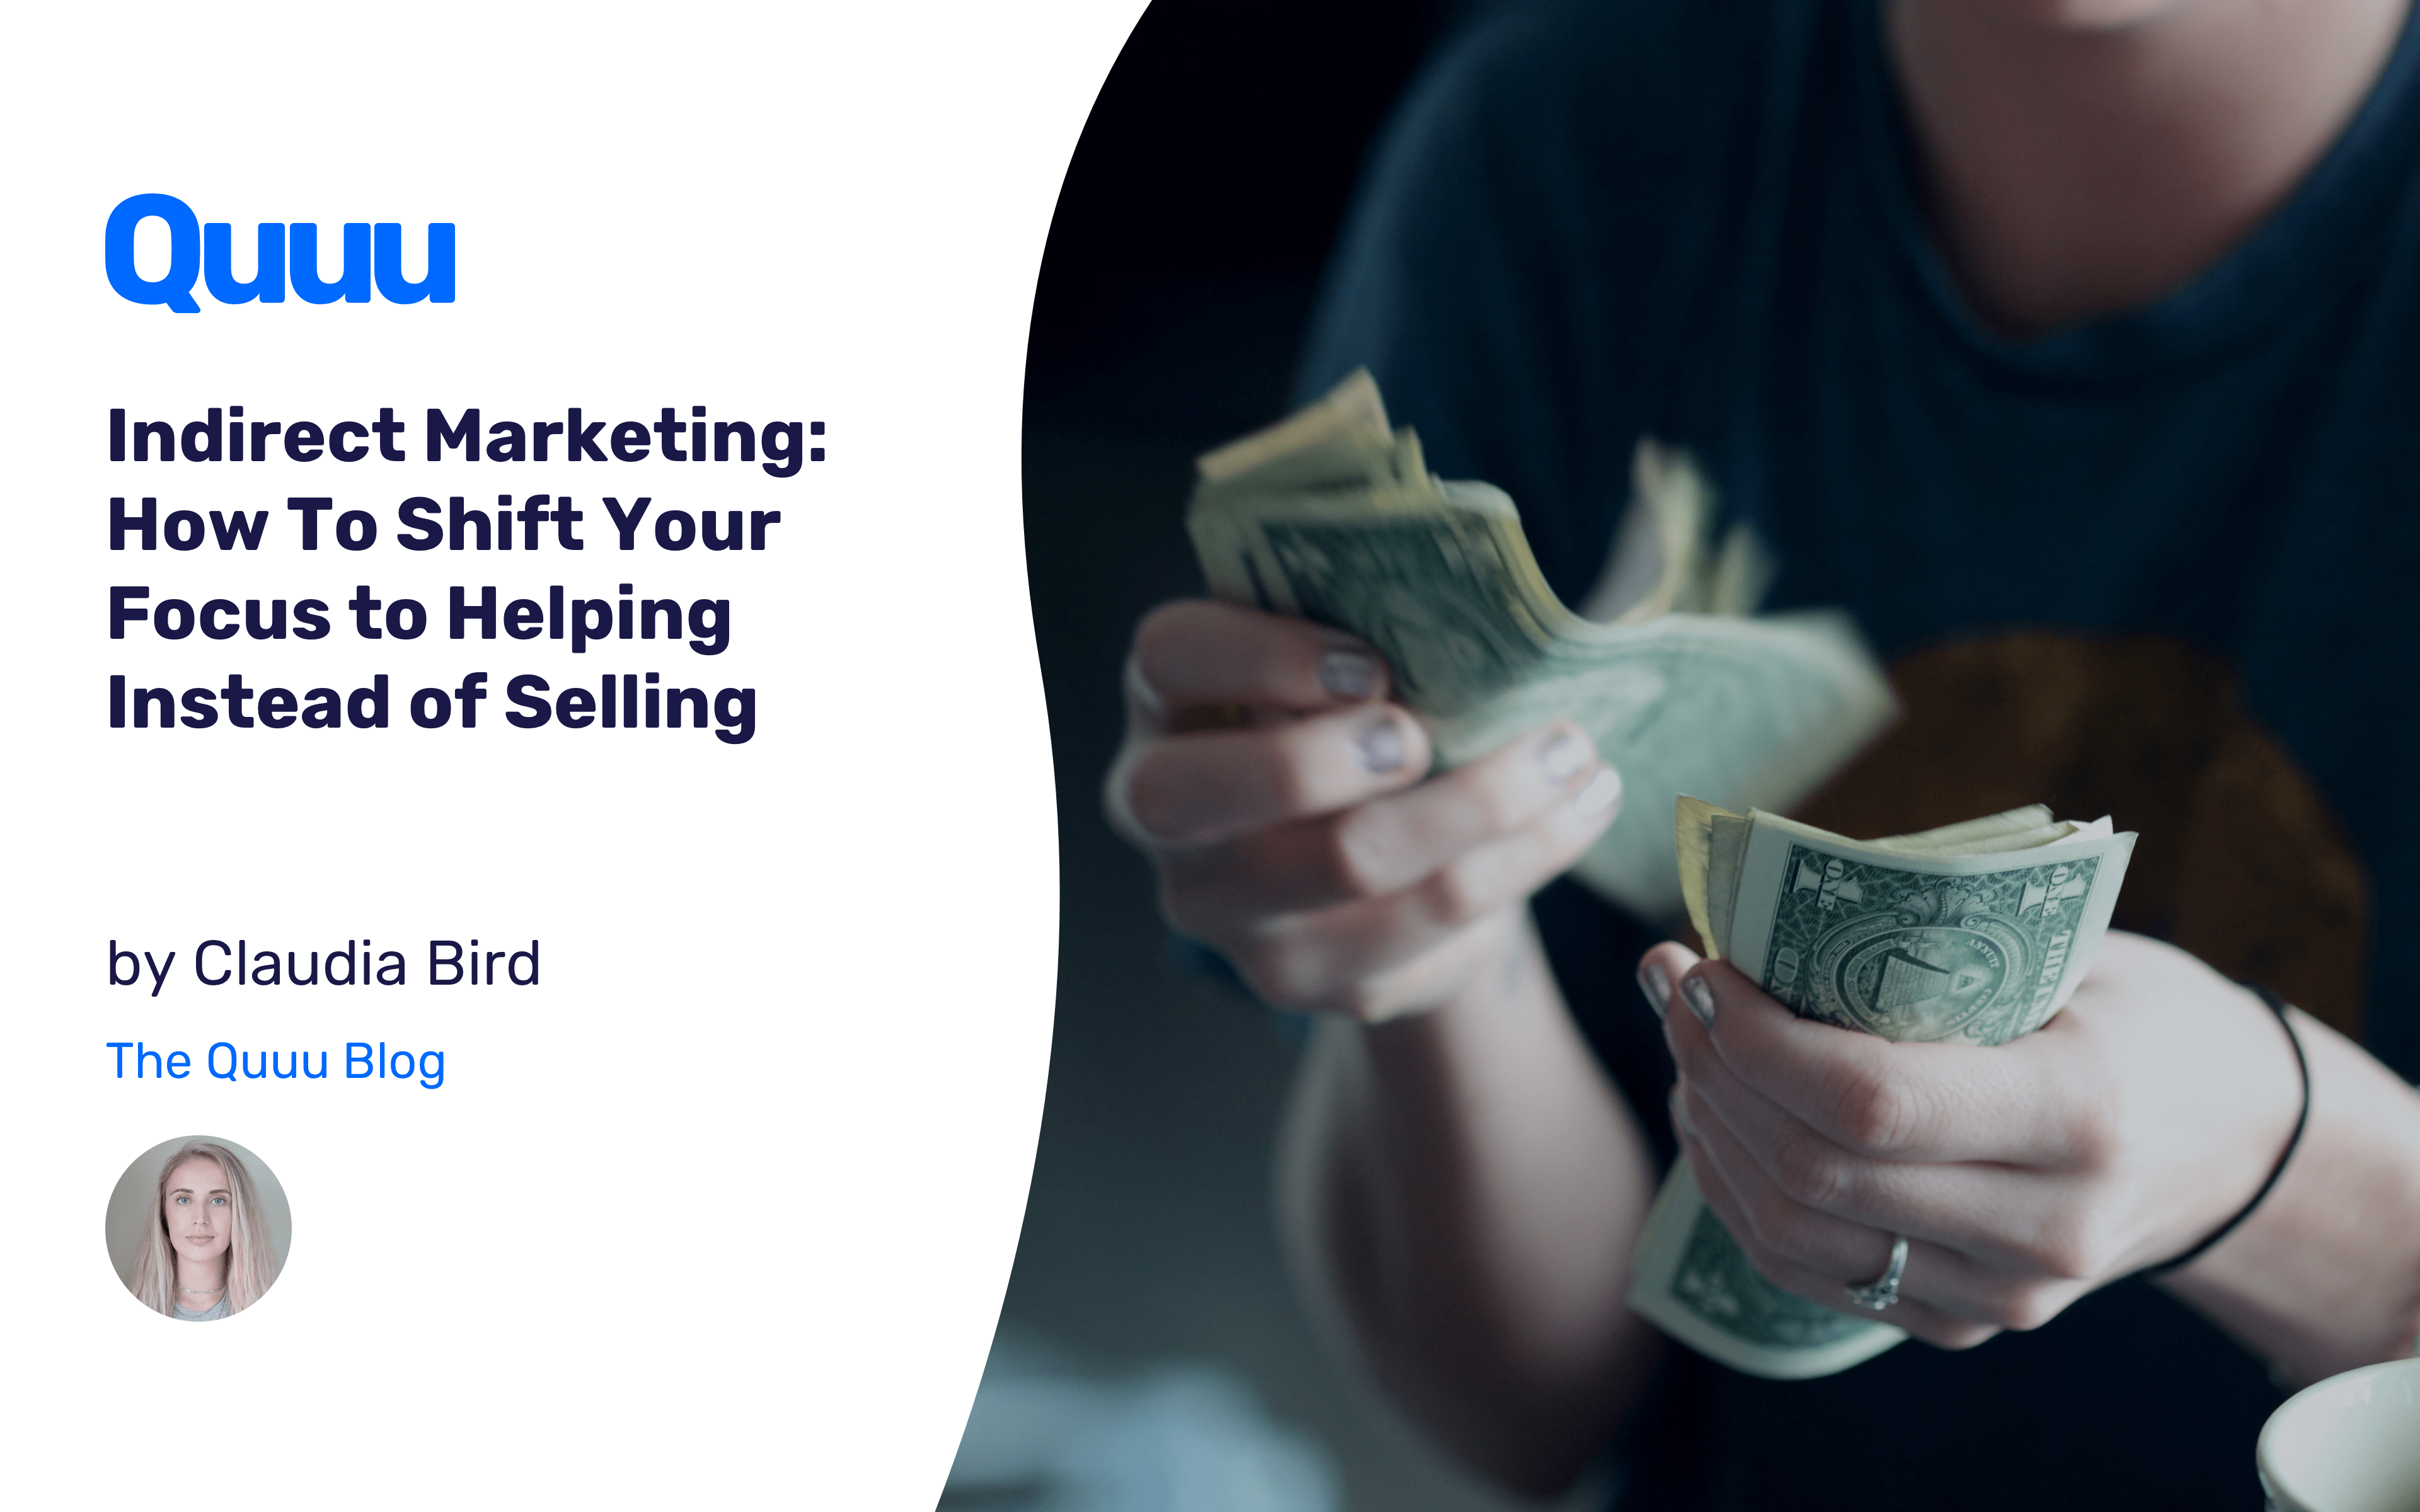 Indirect Marketing: How To Shift Your Focus to Helping Instead of Selling